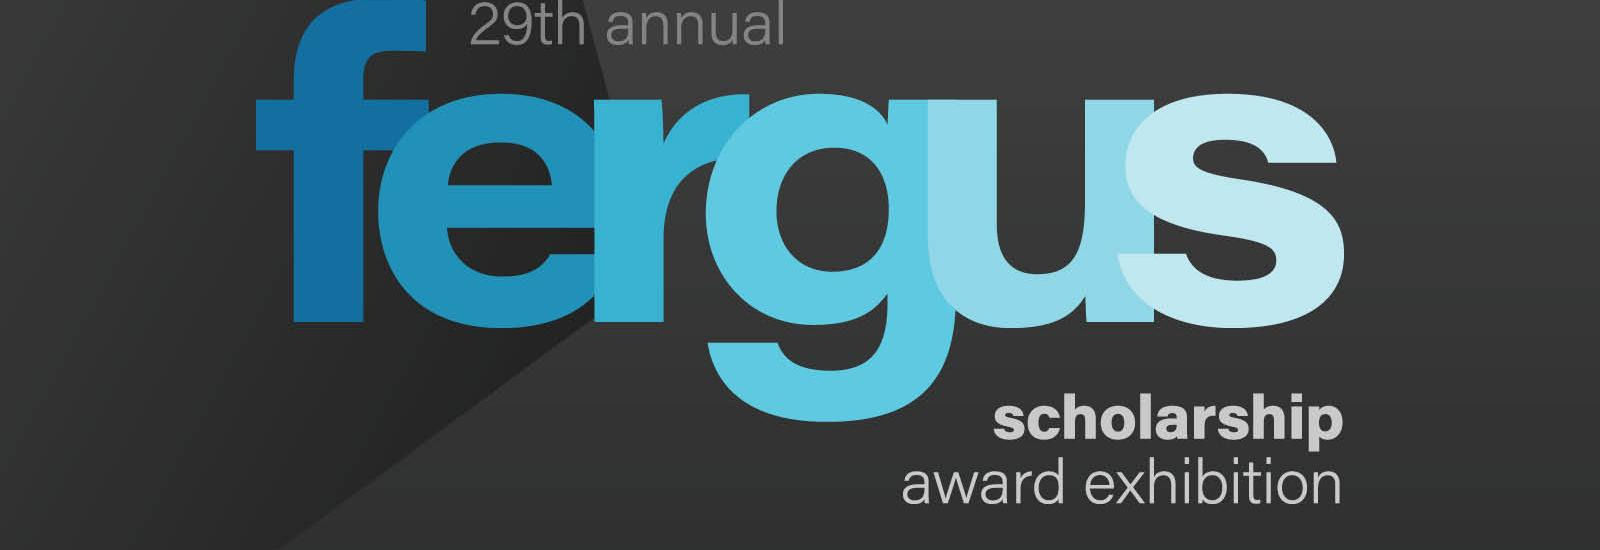 "29th Annual Fergus Scholarship Award Exhibition Logo. ""Fergus"" is an lowercase and each letter is in varying shades of blue. Other pieces of the title surround the word Fergus in white."